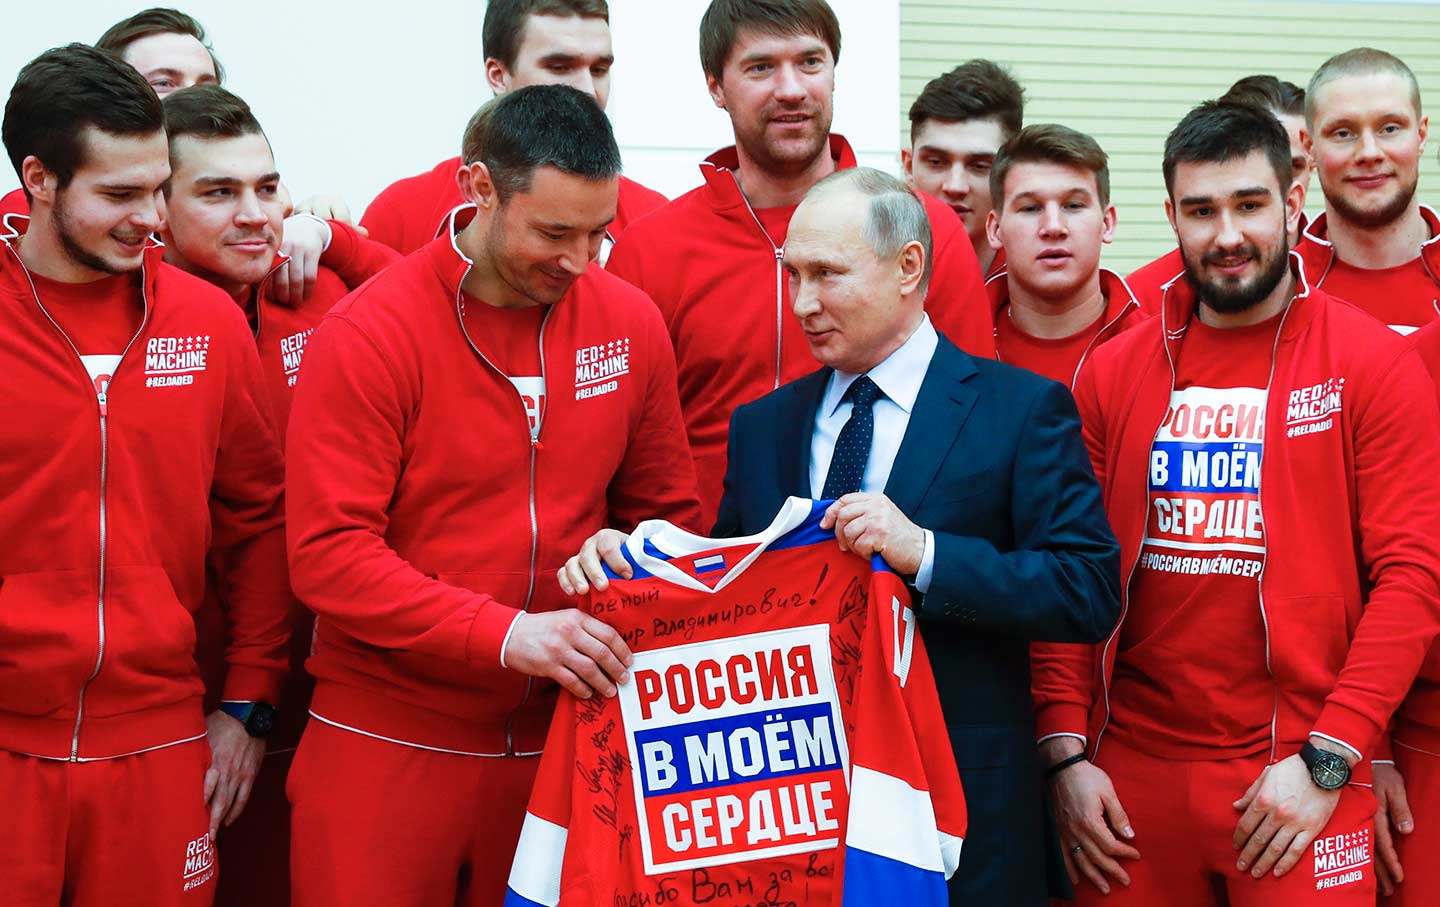 Putin Russian Ice Hockey Team